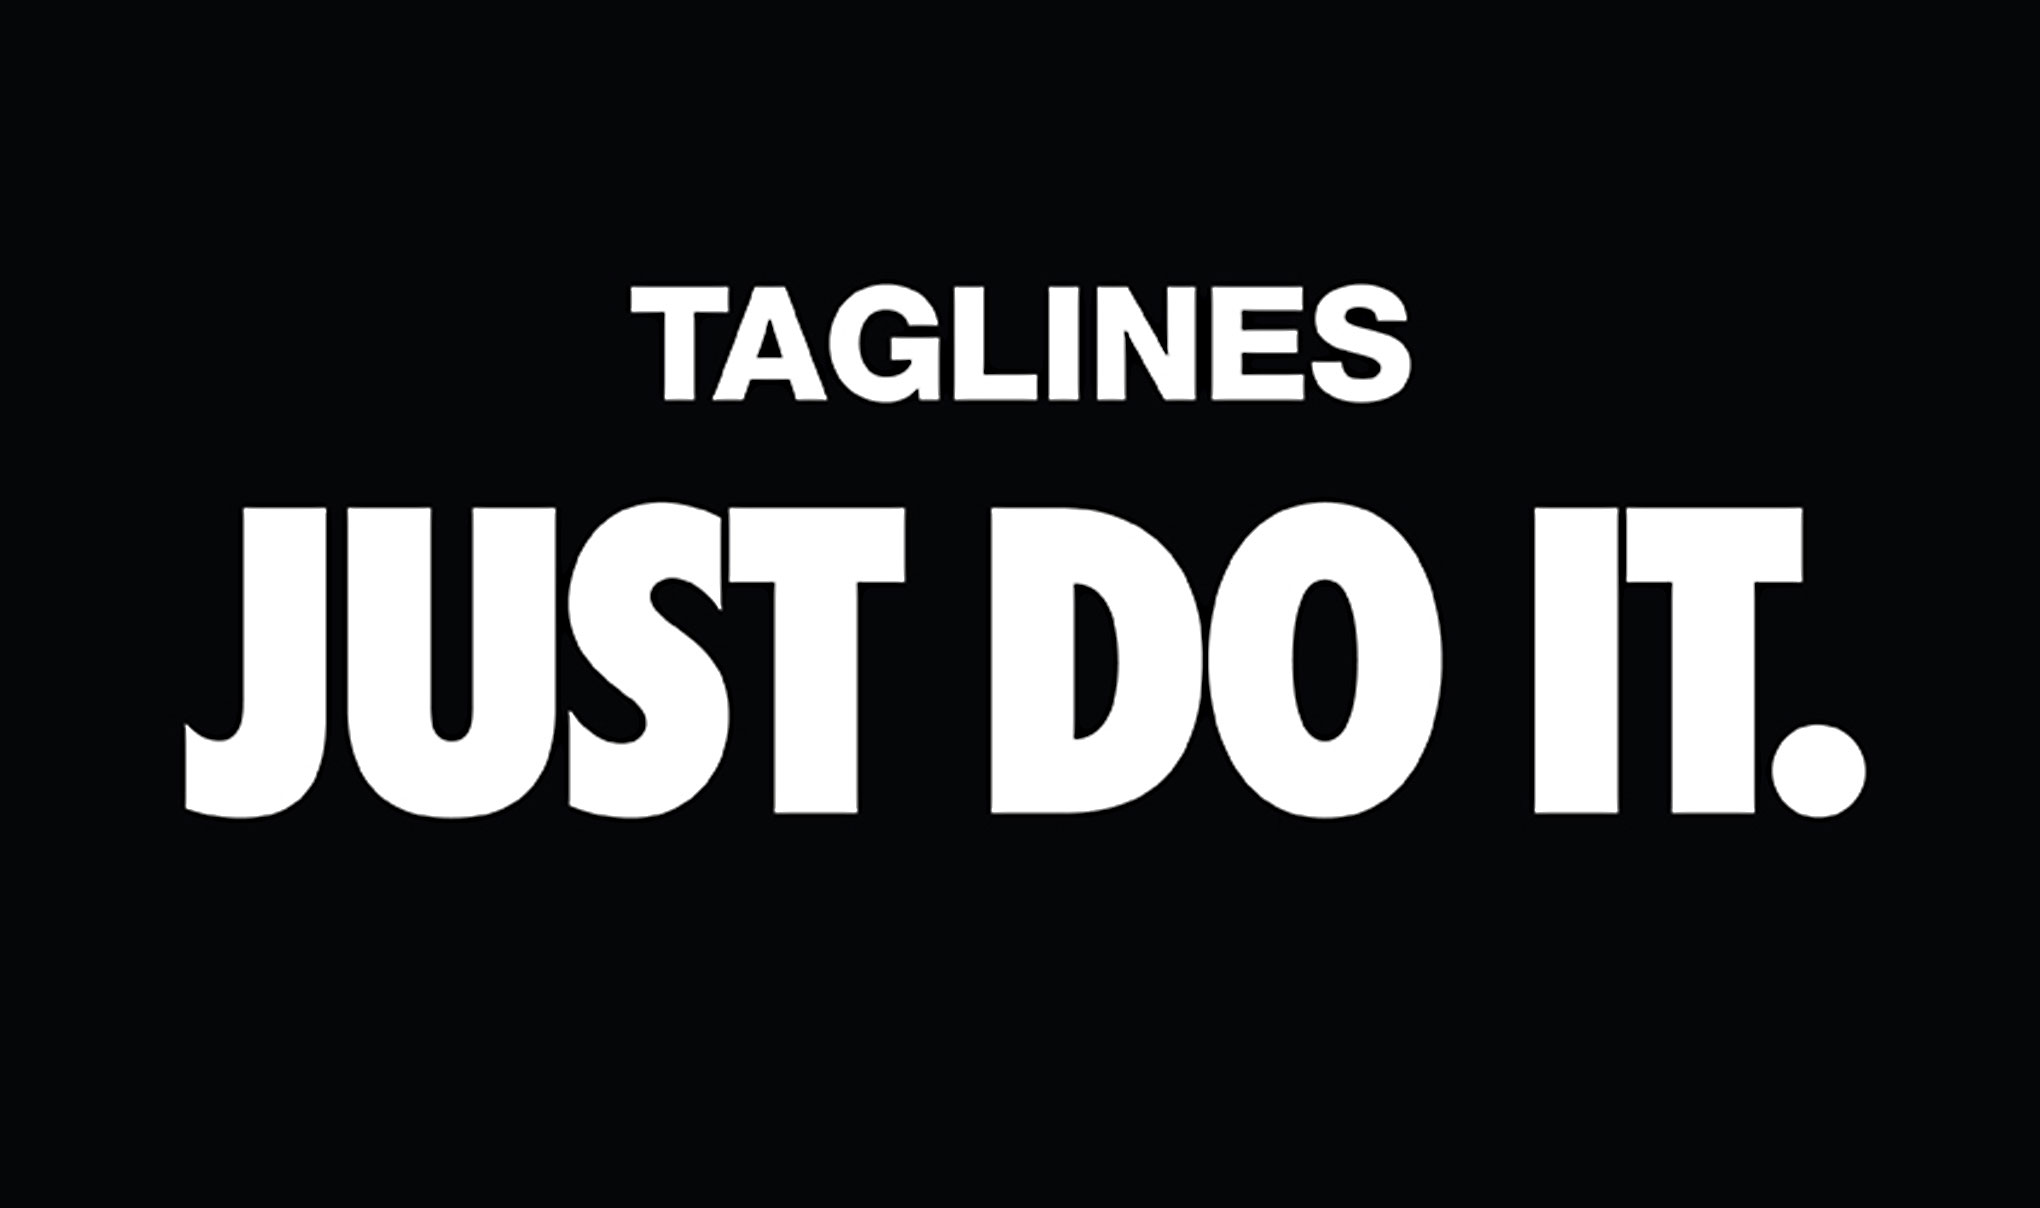 Bold white text on black background. 'Tagline's JUST DO IT'. Supporting the blog about Branding taglines, are they still important.